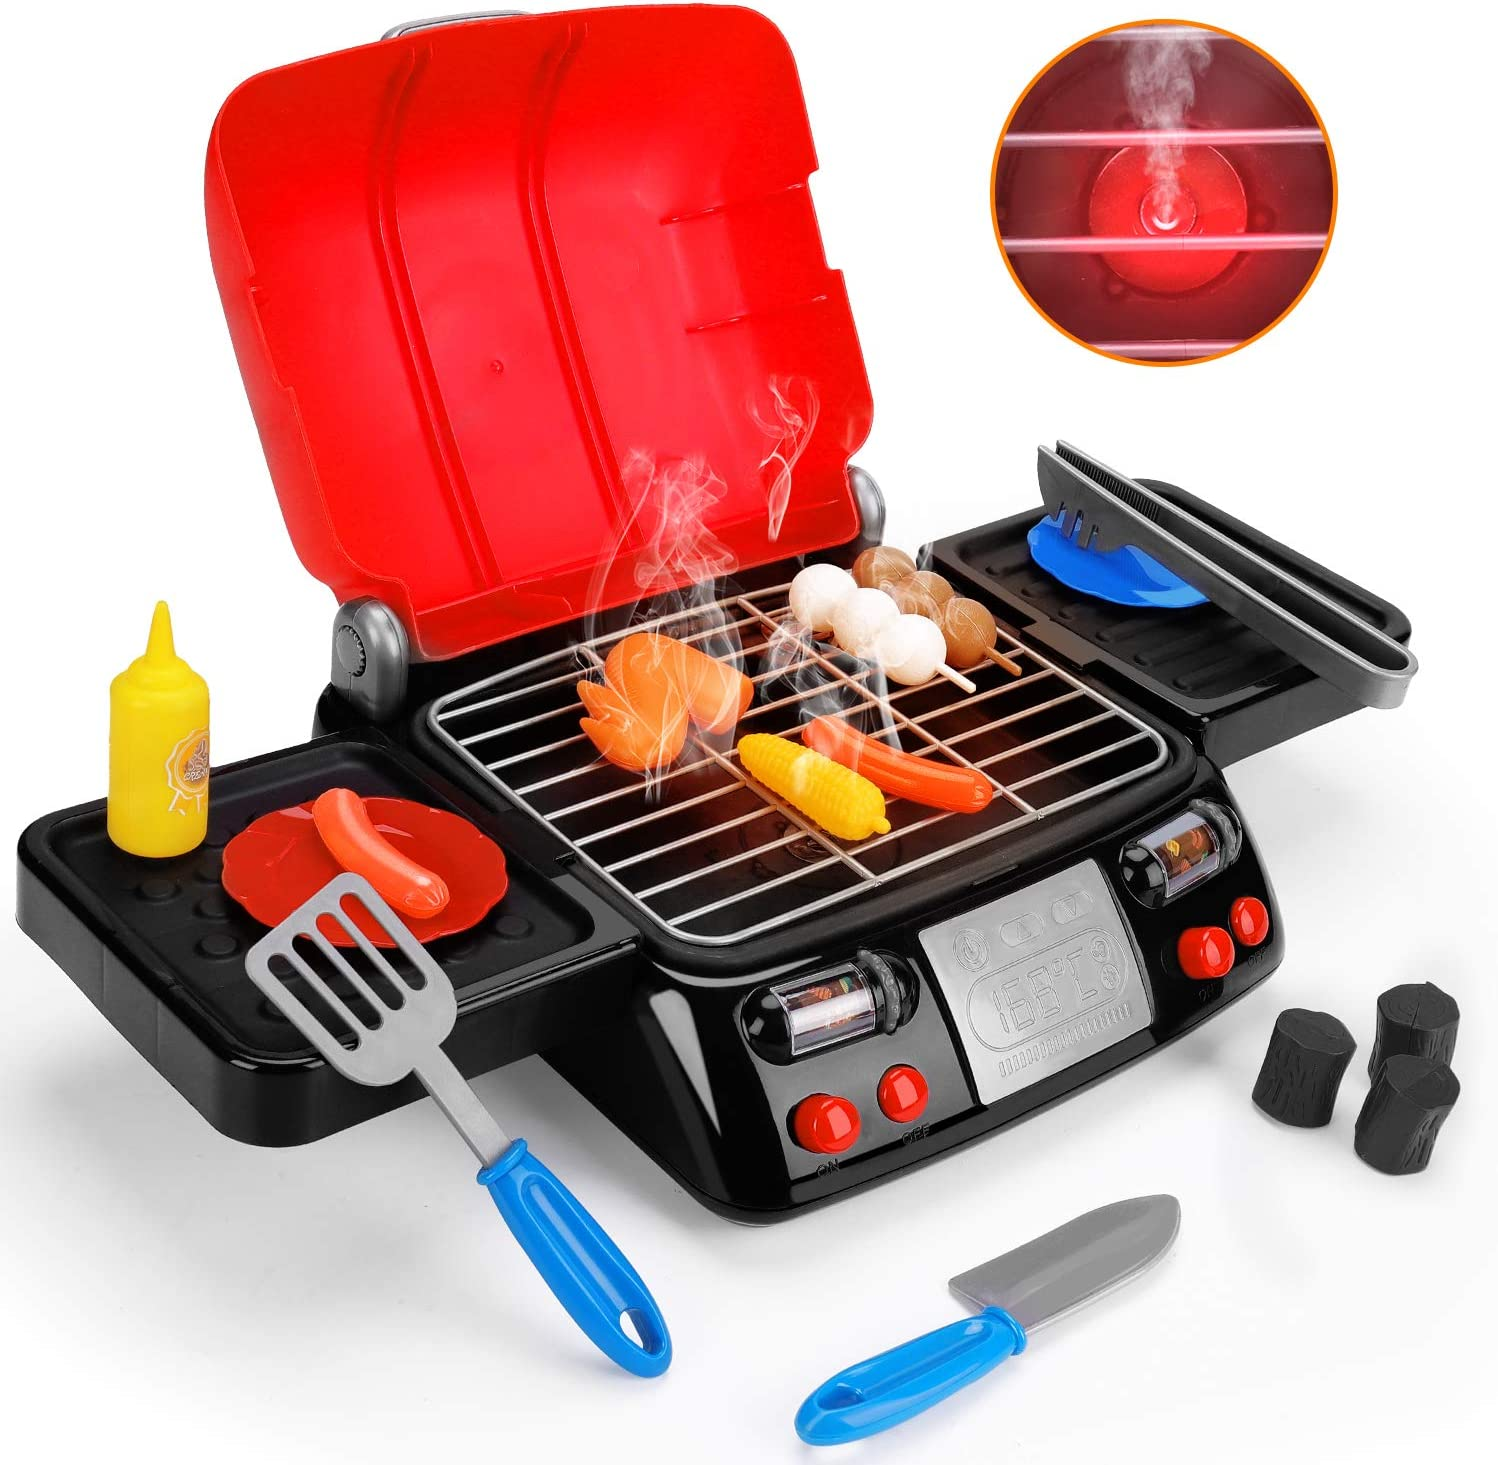 Kids Luxury Play Food Grill with Light Smoke Sound Kitchen Pretend Ranking TOP16